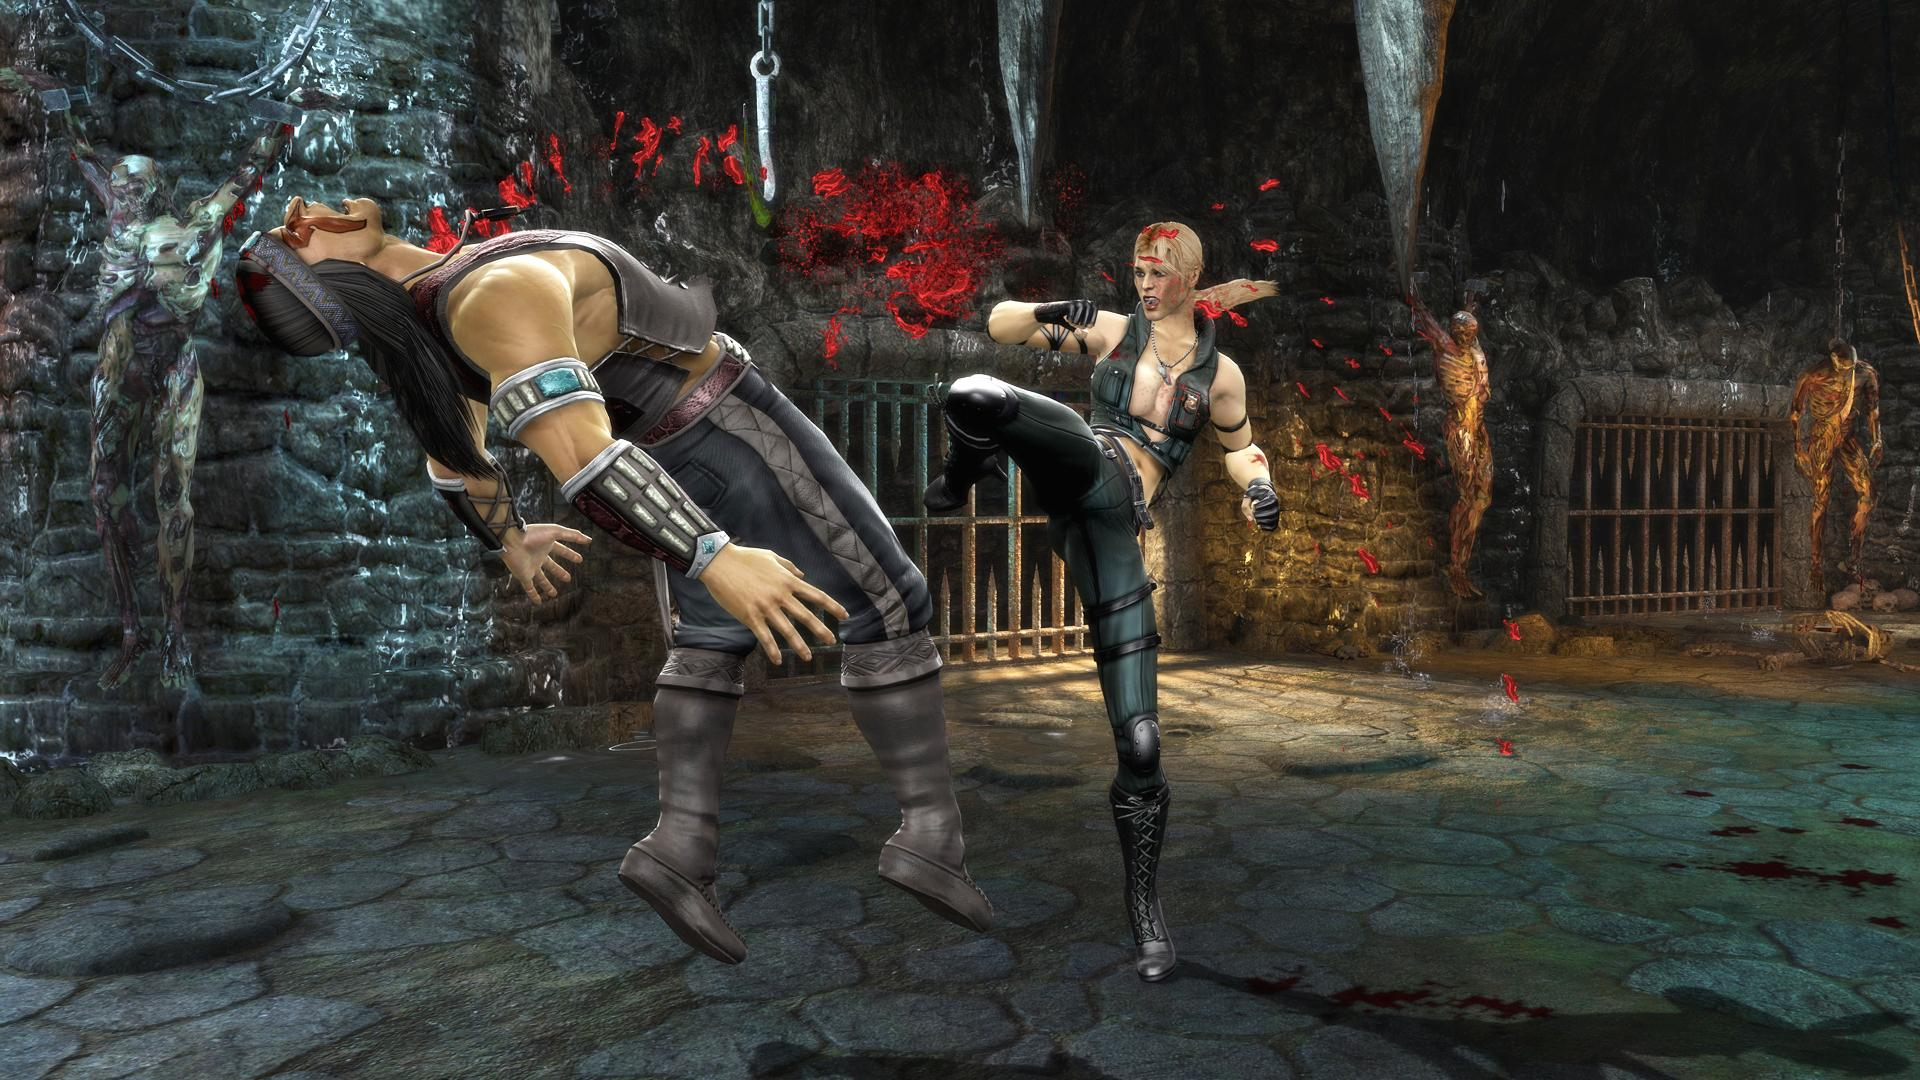 Mortal Kombat Fatality and Babality List | GamesRadar+